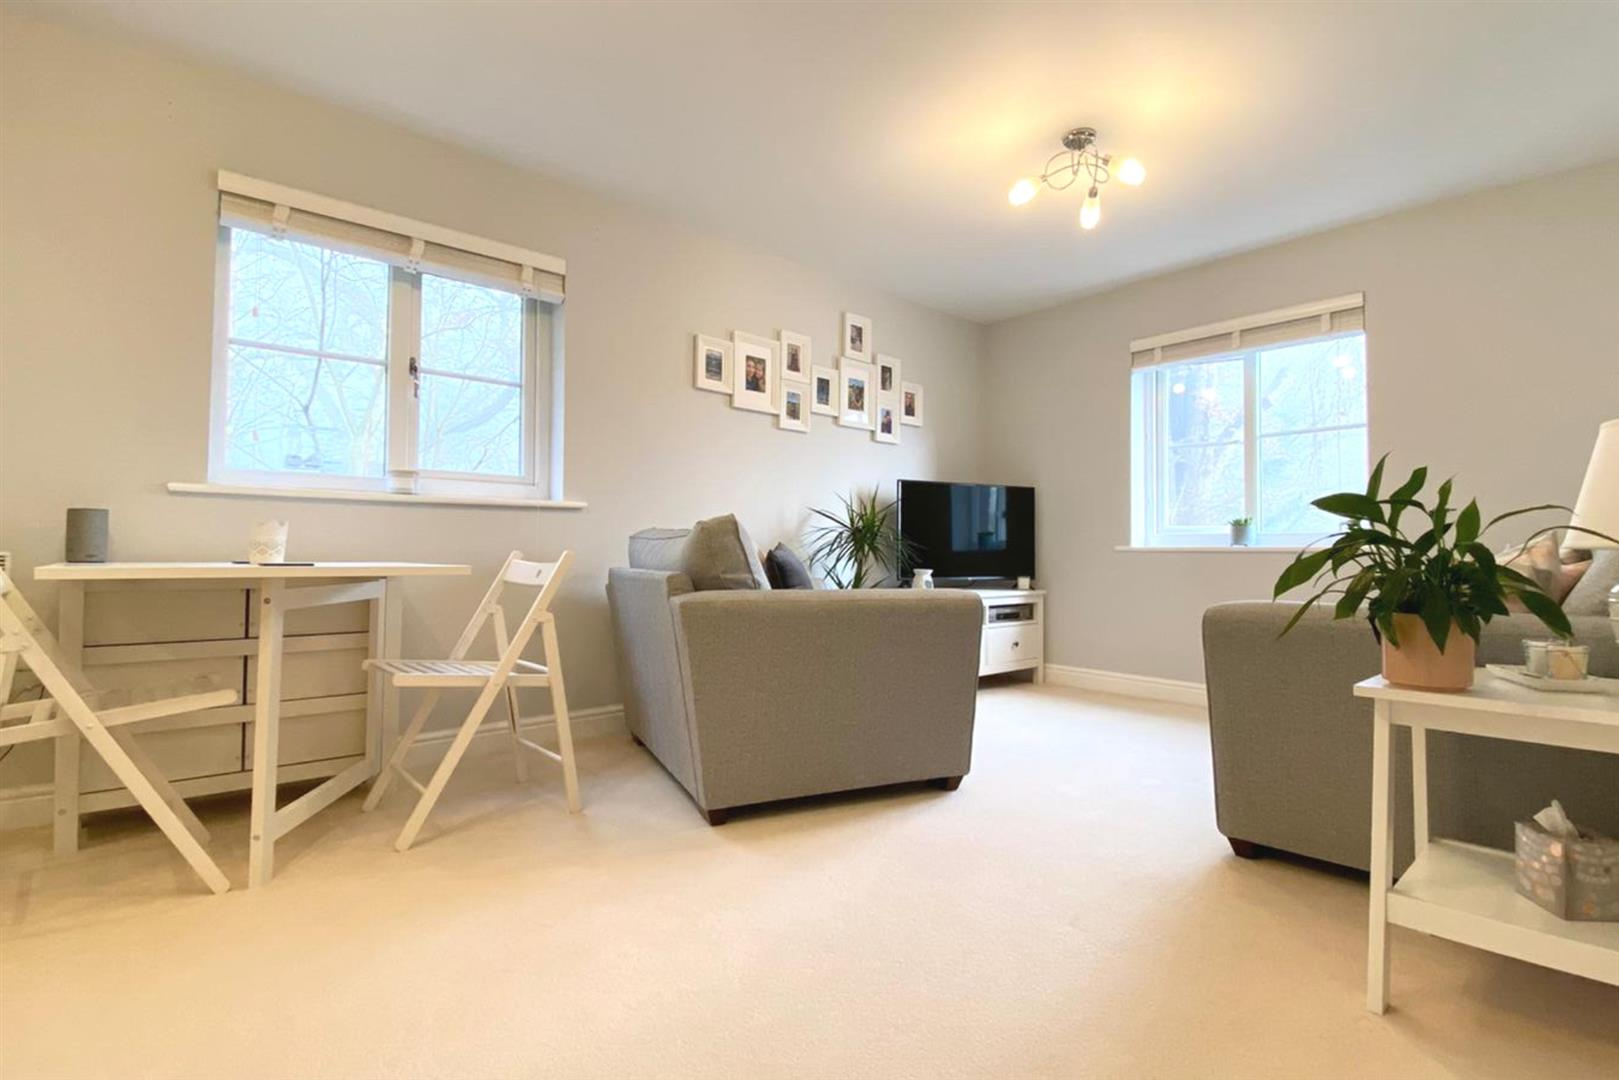 2 bed apartment for sale in Arborfield, RG2